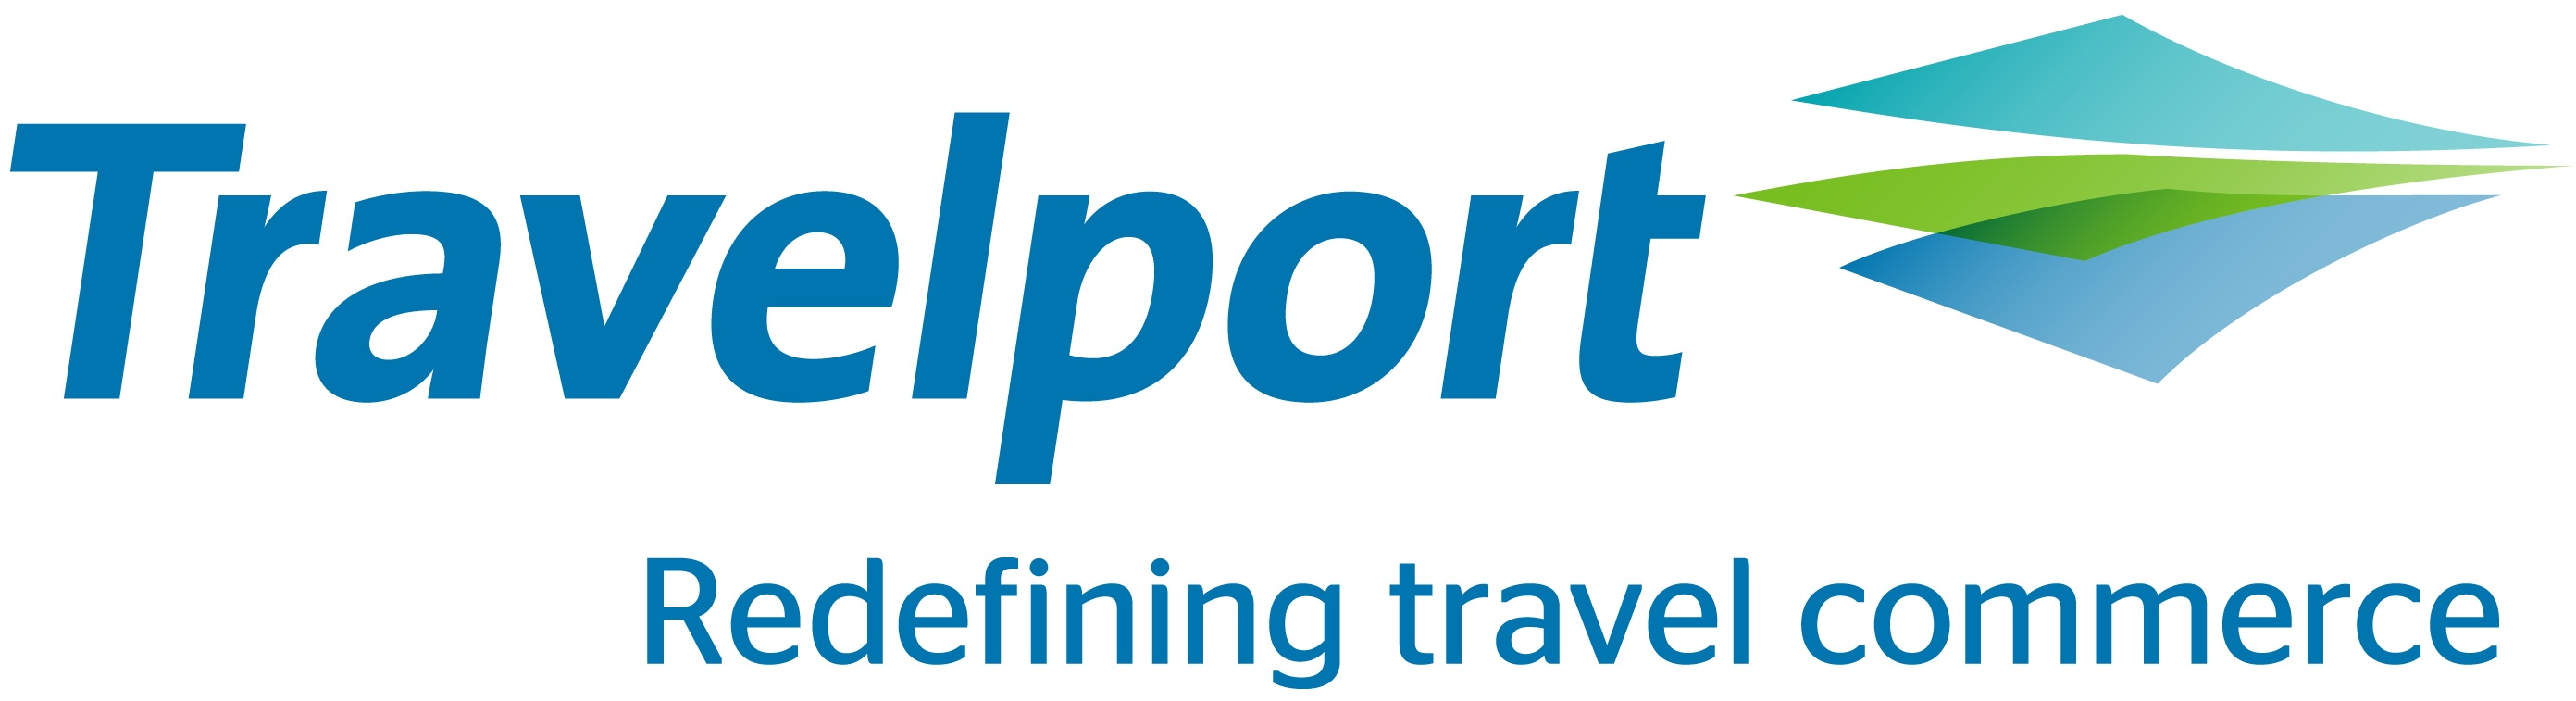 15 years of dcs plus - Interview with Ms. Kathy Hodges, Regional Strategic Partnerships & Alliances Manager at Travelport